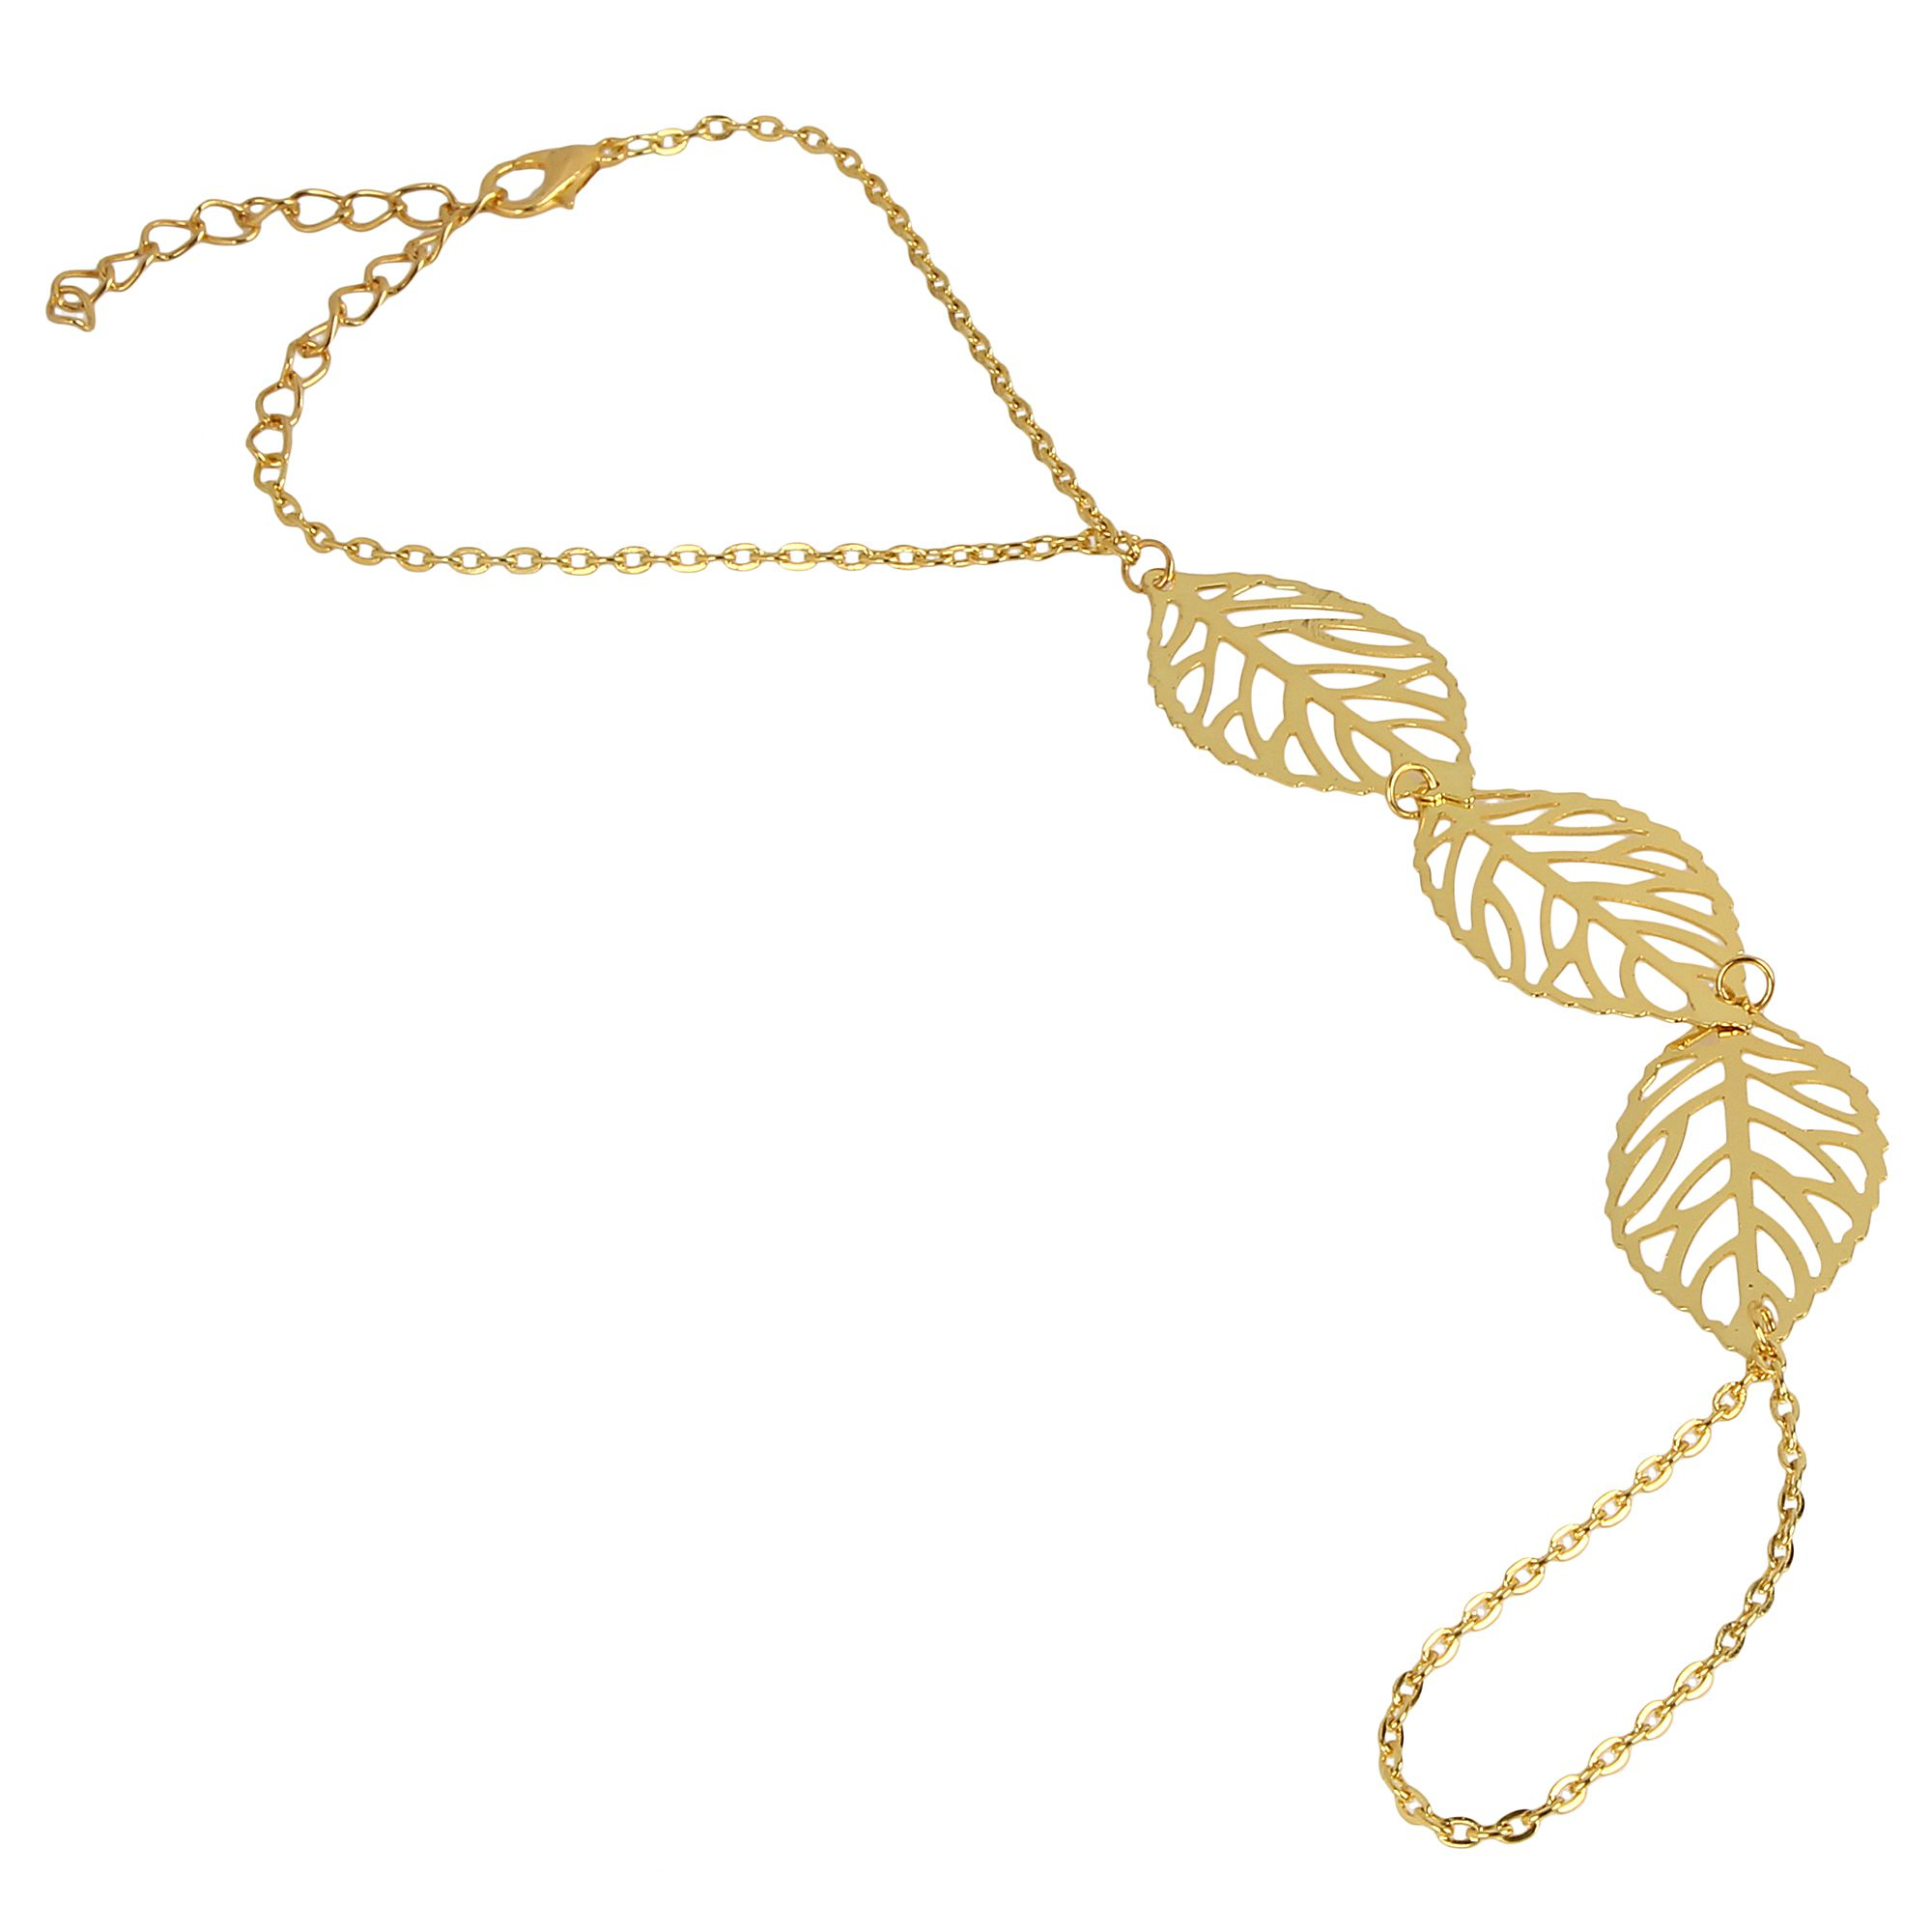 Fayon Chic Stylish Golden Leaf Charm Bracelet With Connected Ring